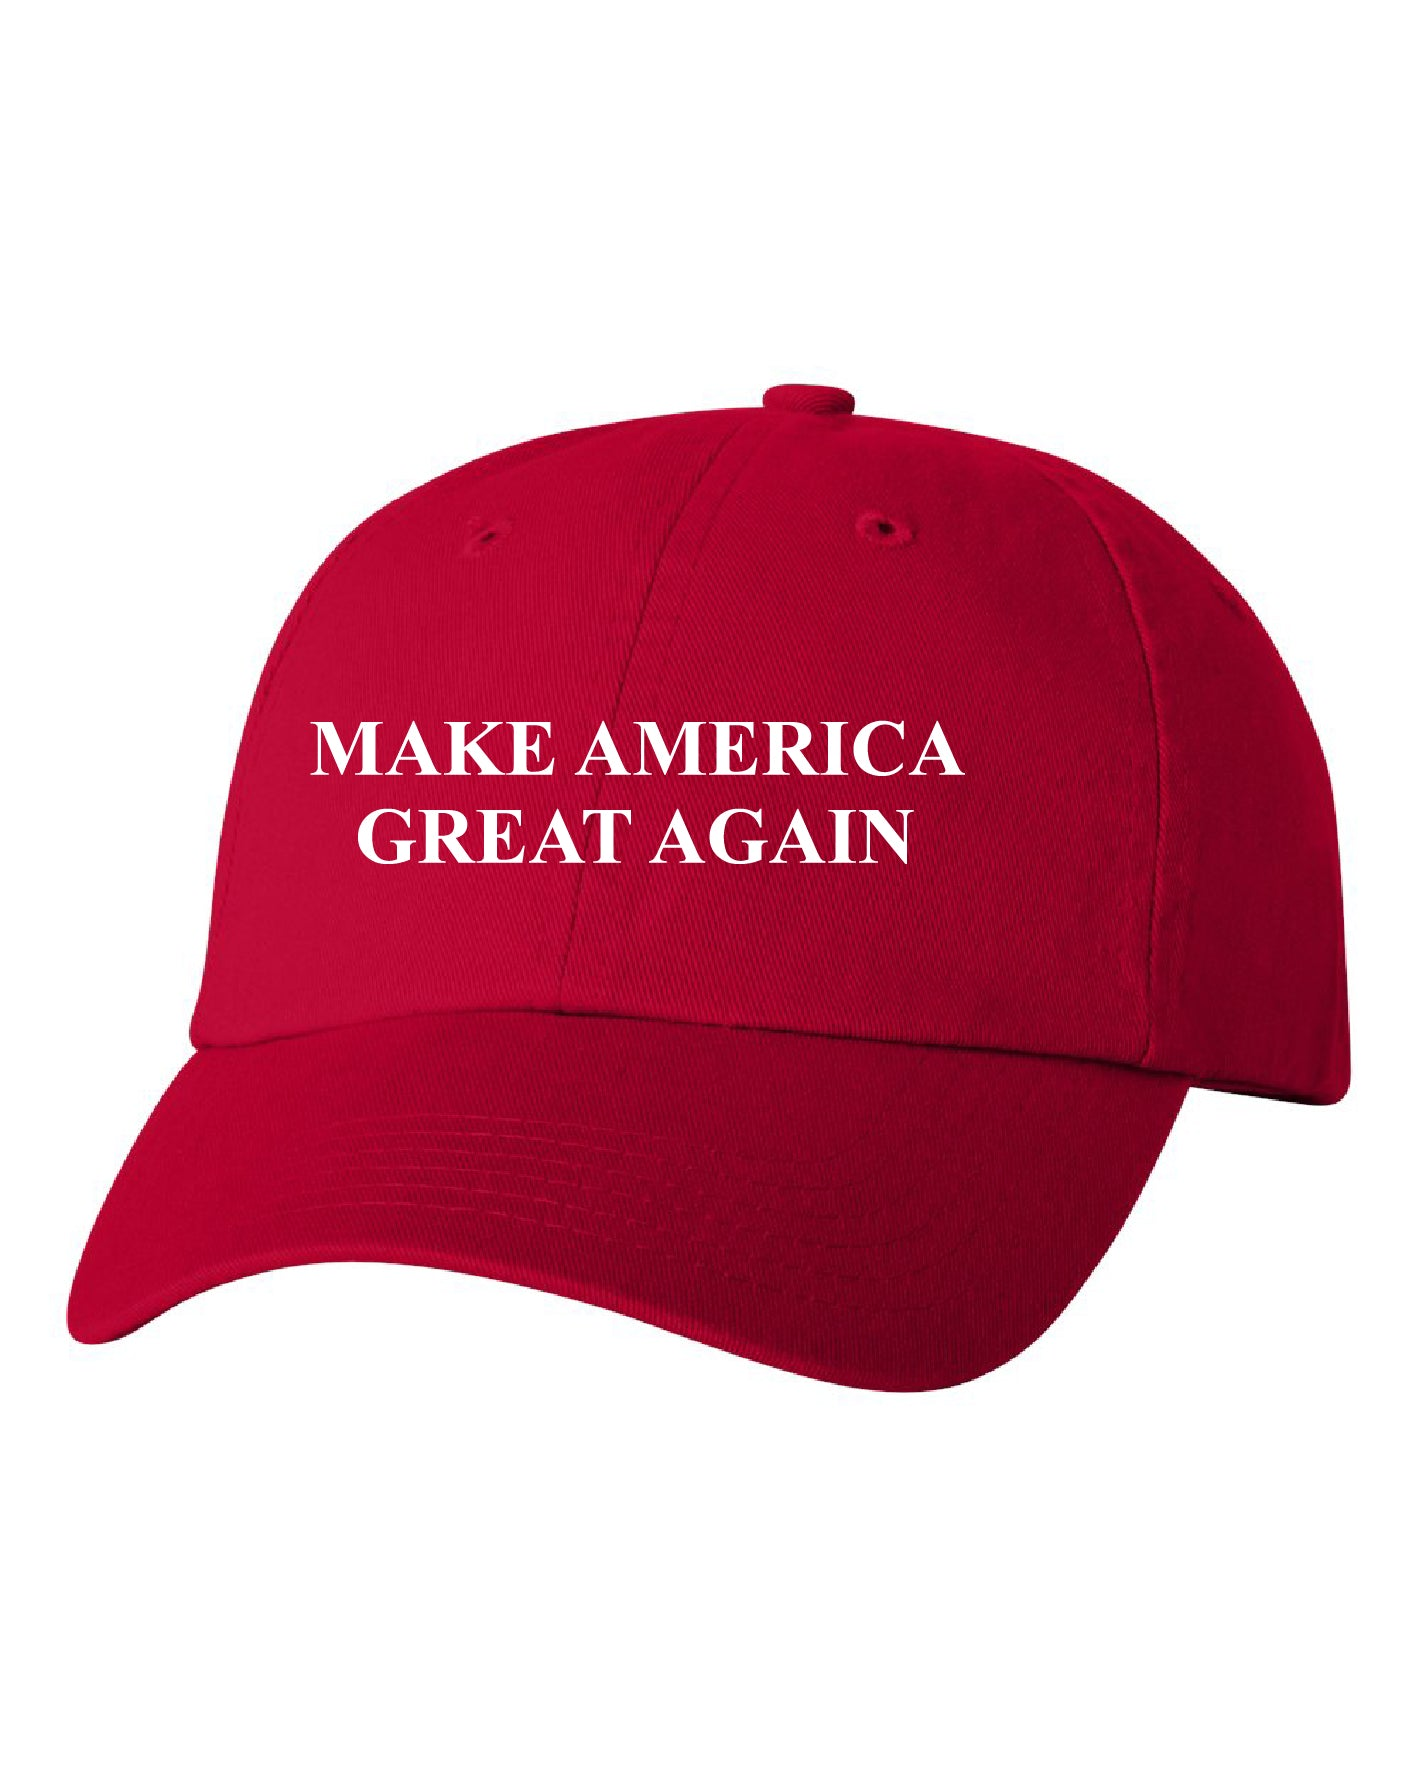 Make America Great Again Red Classic Hat